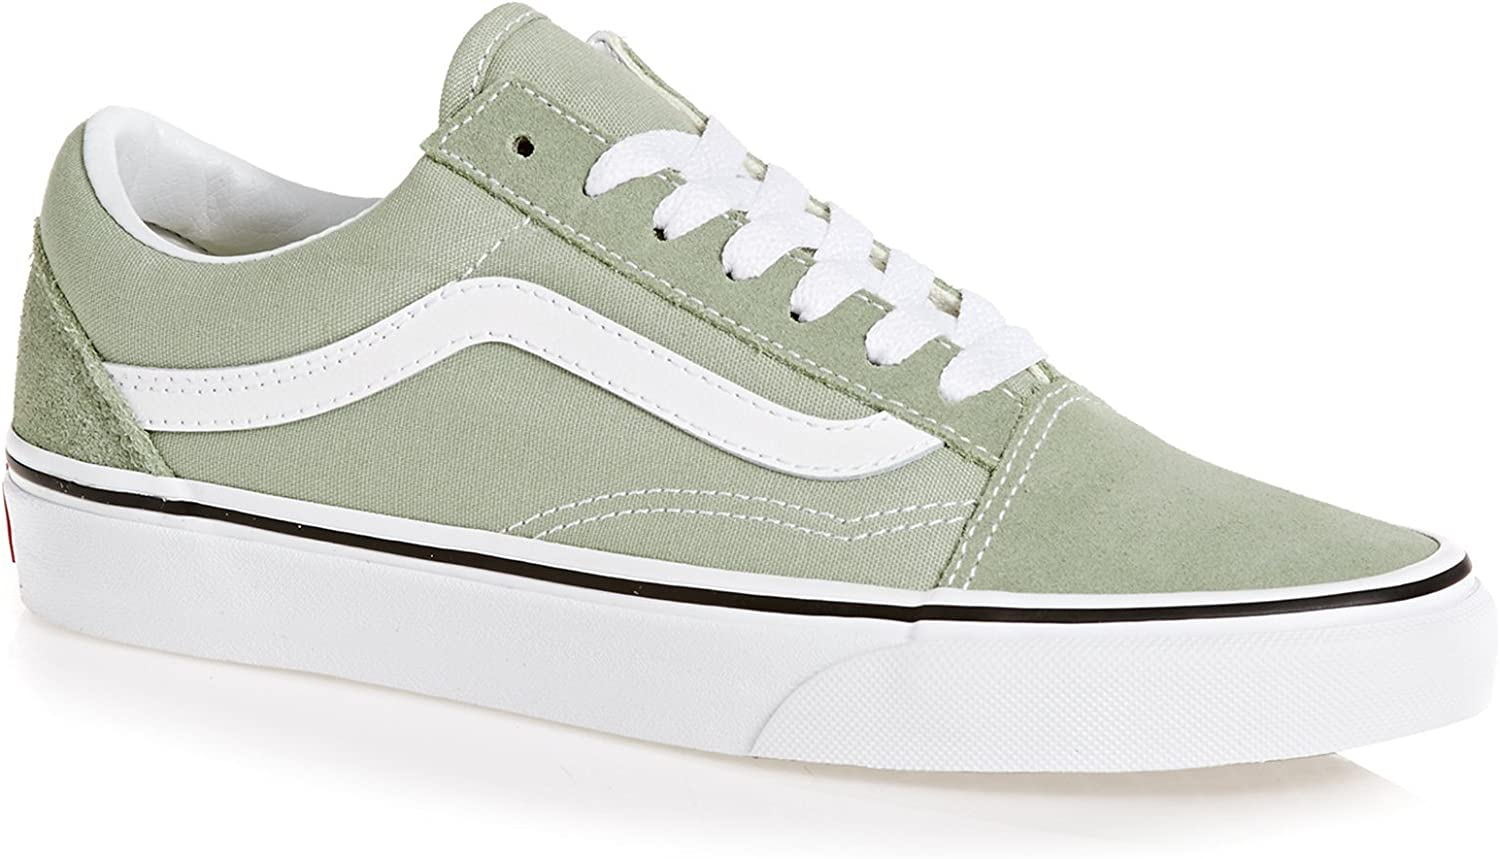 Vans Old Skool -Fall 2018-(VN0A38G1U621) - Desert Sage True White - 4